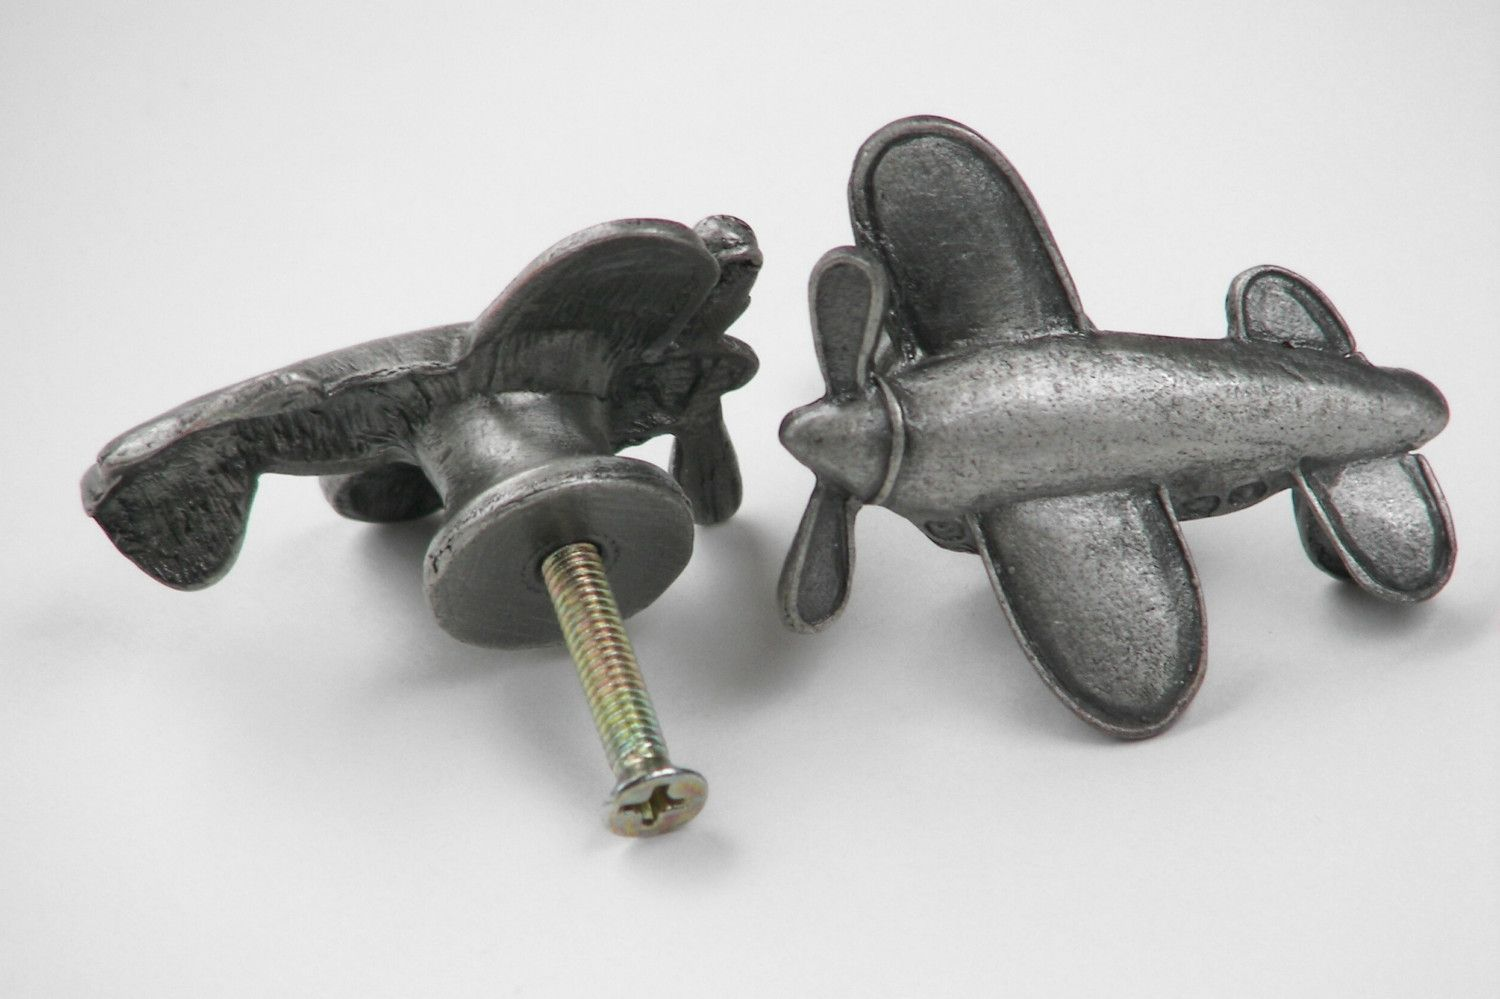 Airplane Drawer Pulls 17 90 Via Etsy If I Can T Find The